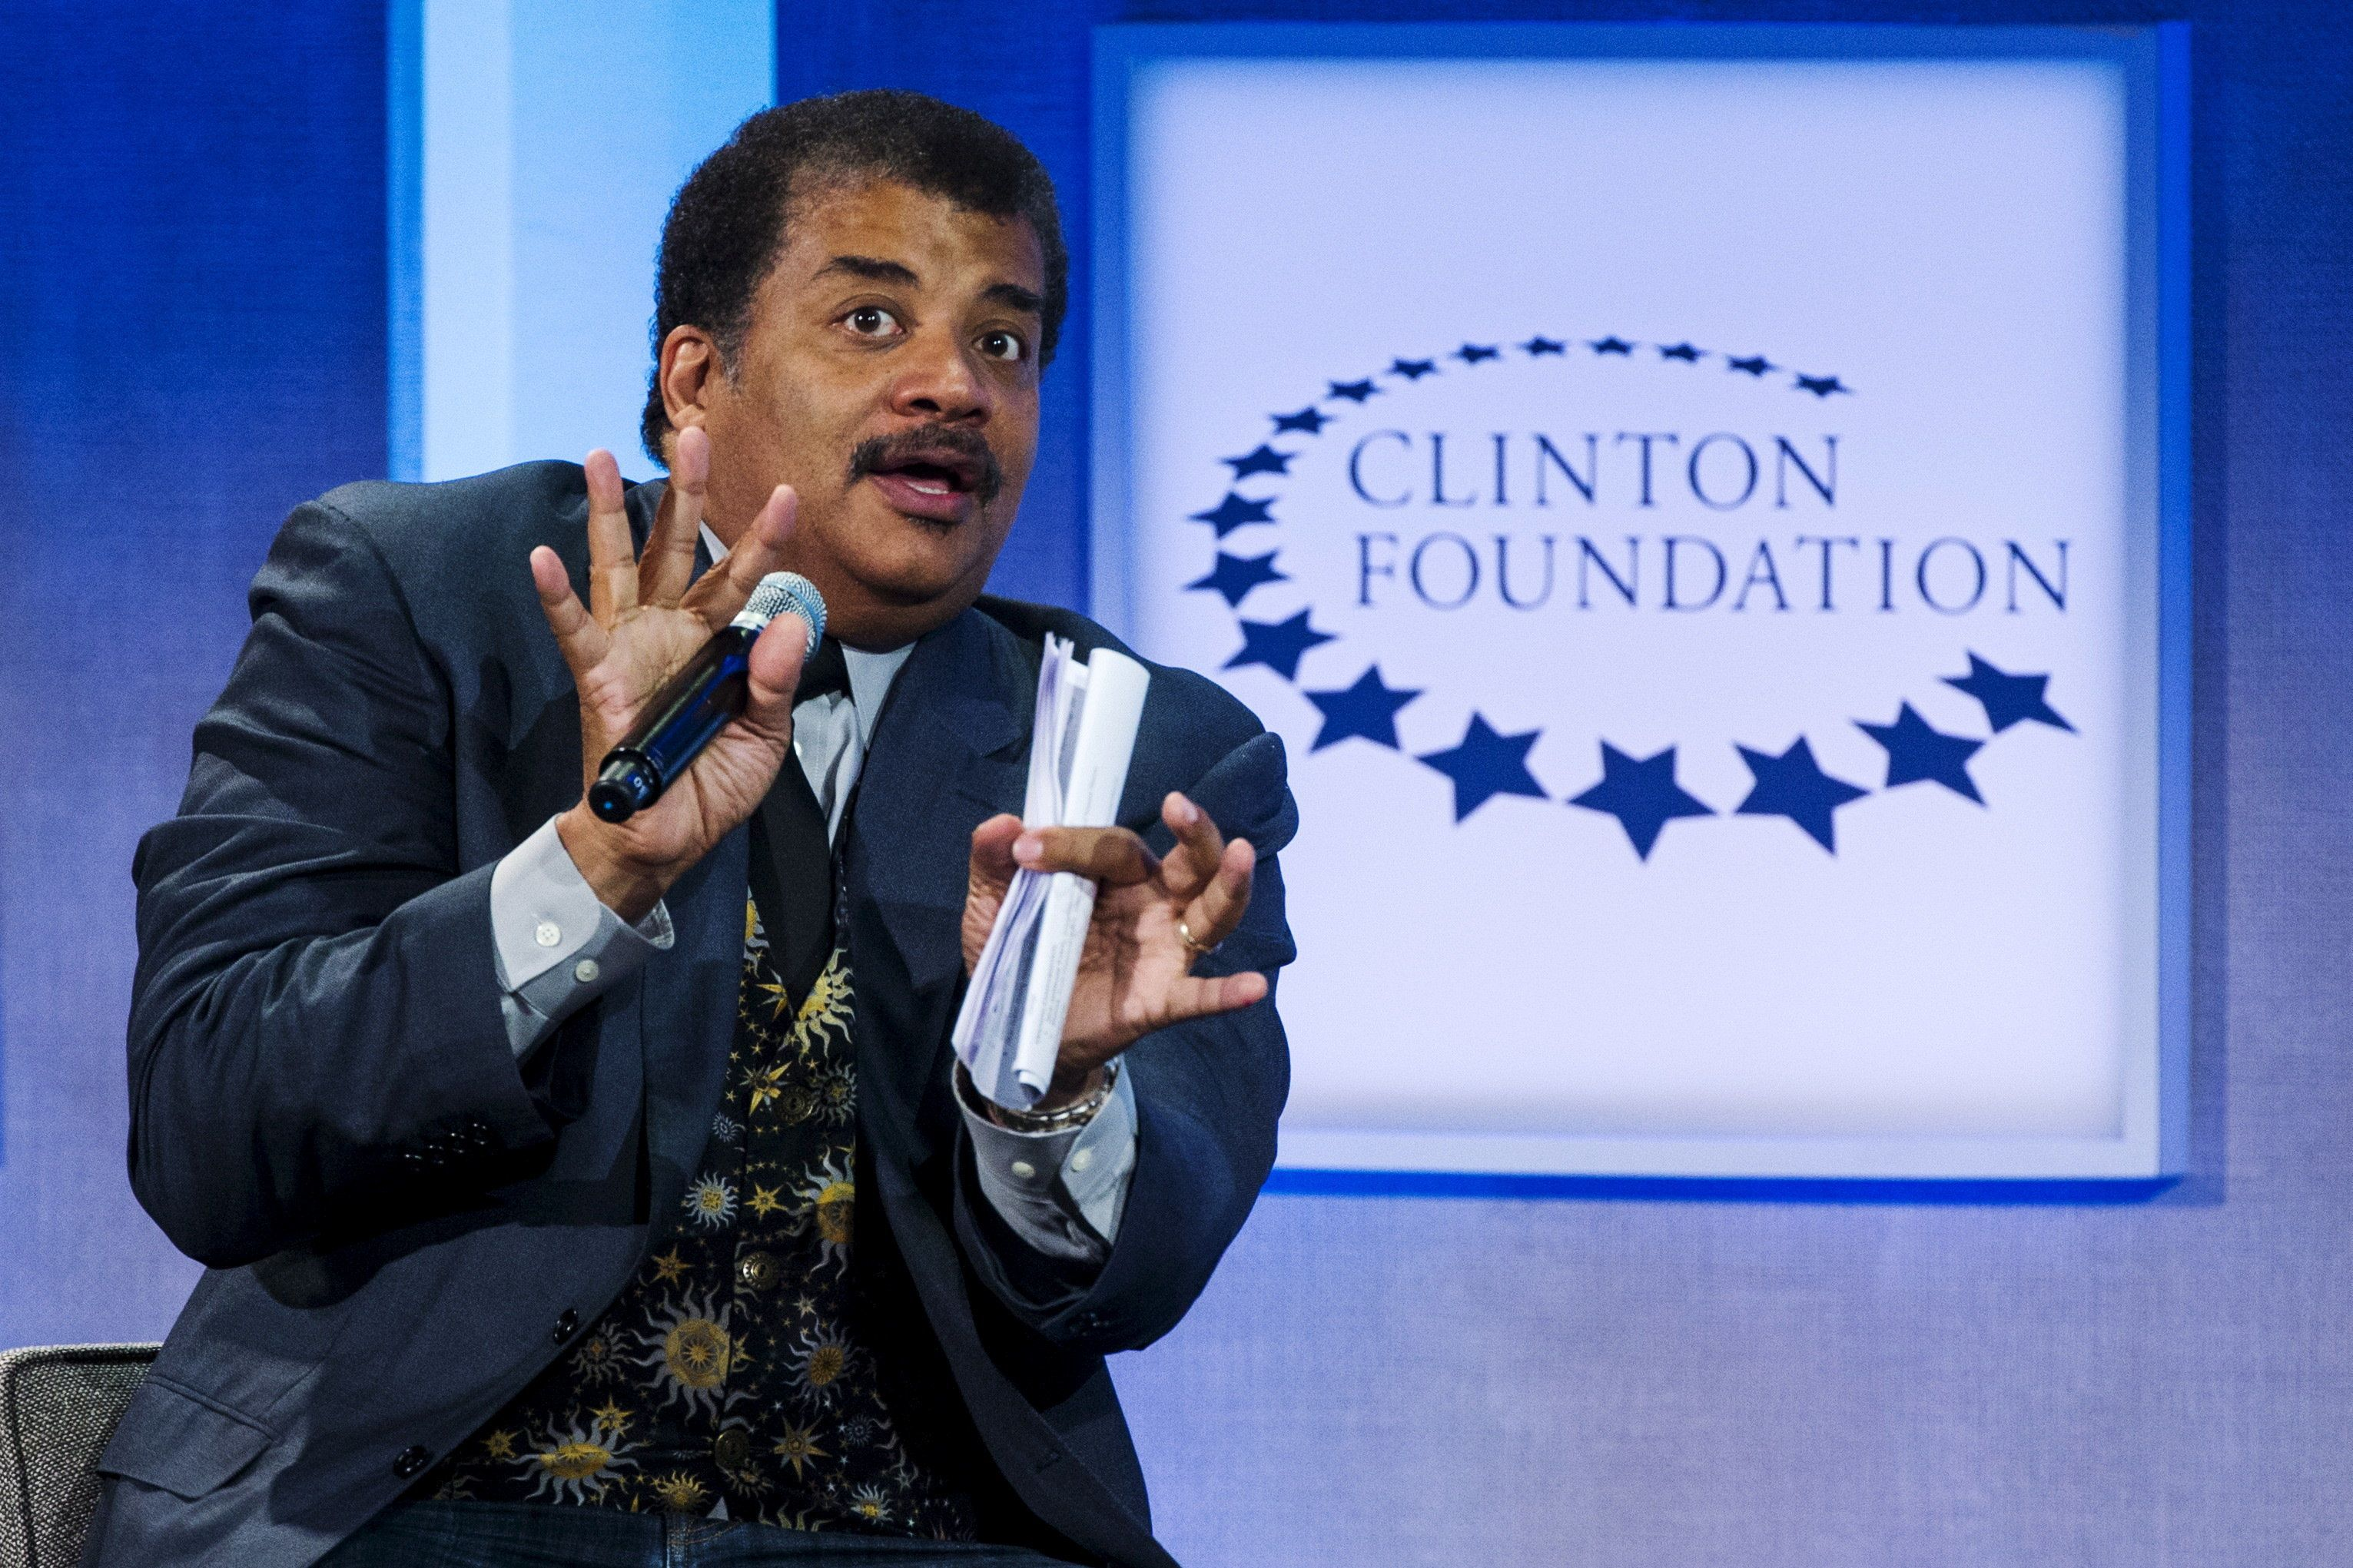 Astrophysicist Neil deGrasse Tyson speaks during the Clinton Global Initiative's annual meeting in New York, September 28, 2015.  REUTERS/Lucas Jackson